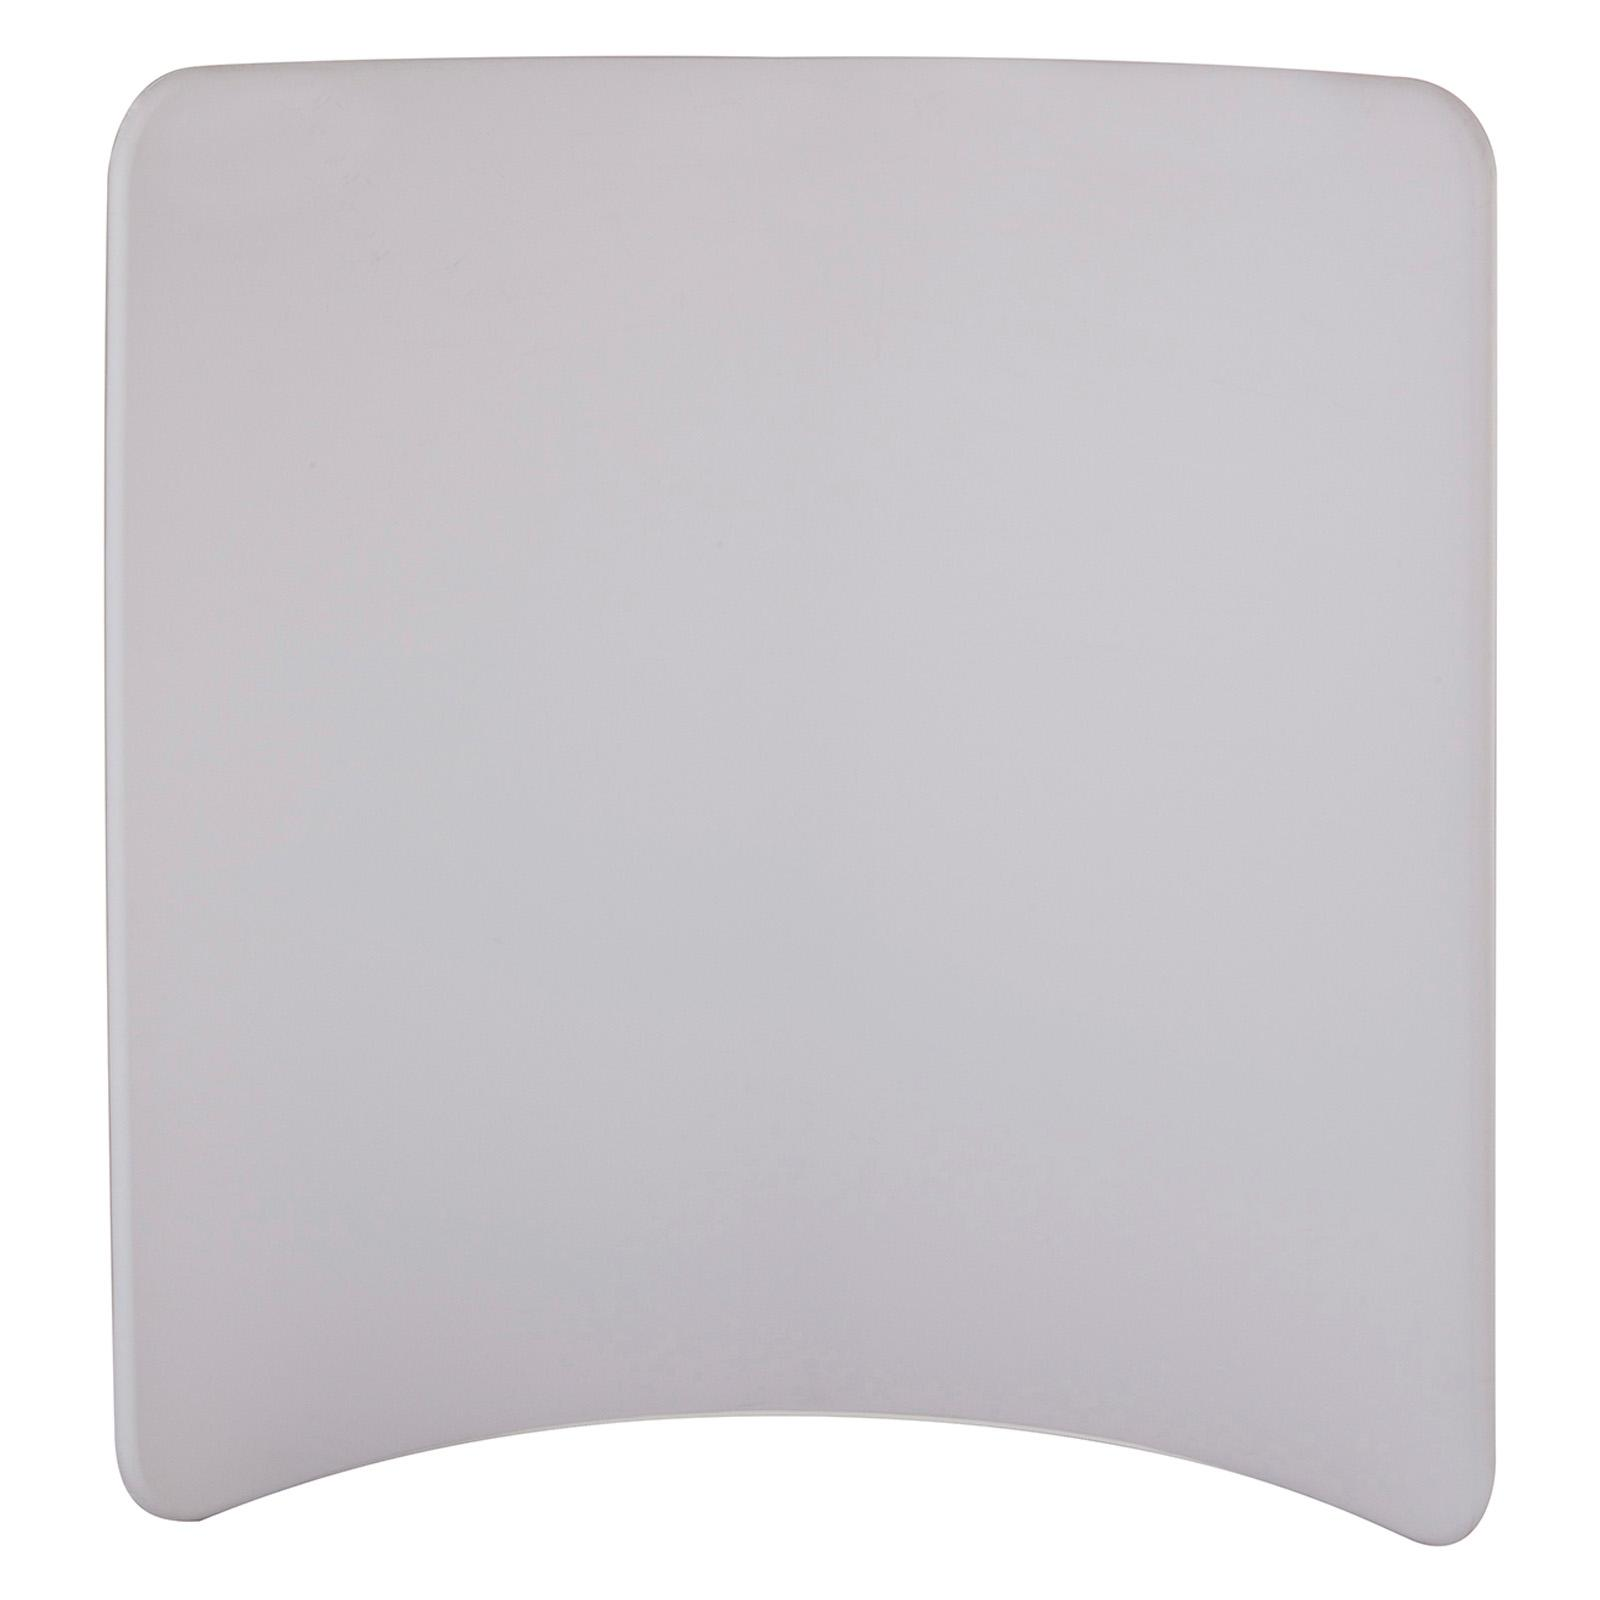 Safco Adapt Arc-Shape Space Divider Screen Panel Gray - 1...